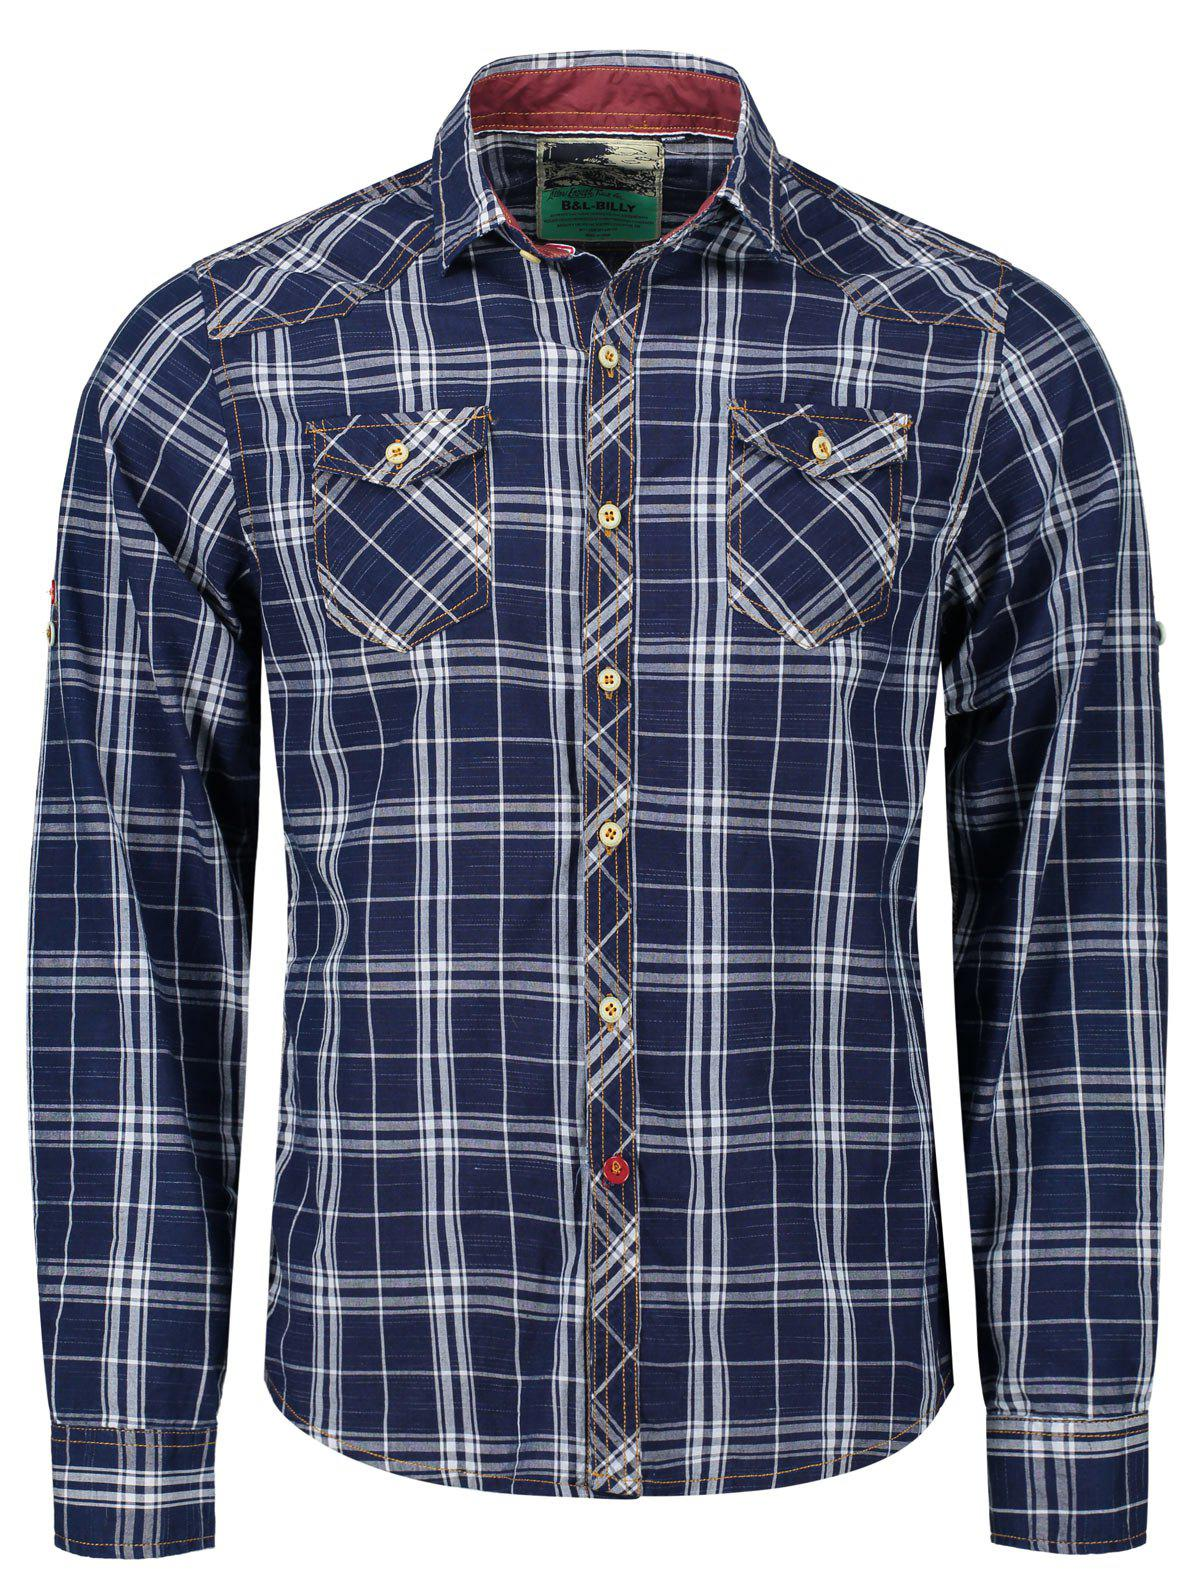 Adjustable Sleeve Flap Pockets Plaid Shirt - BLUE/WHITE L